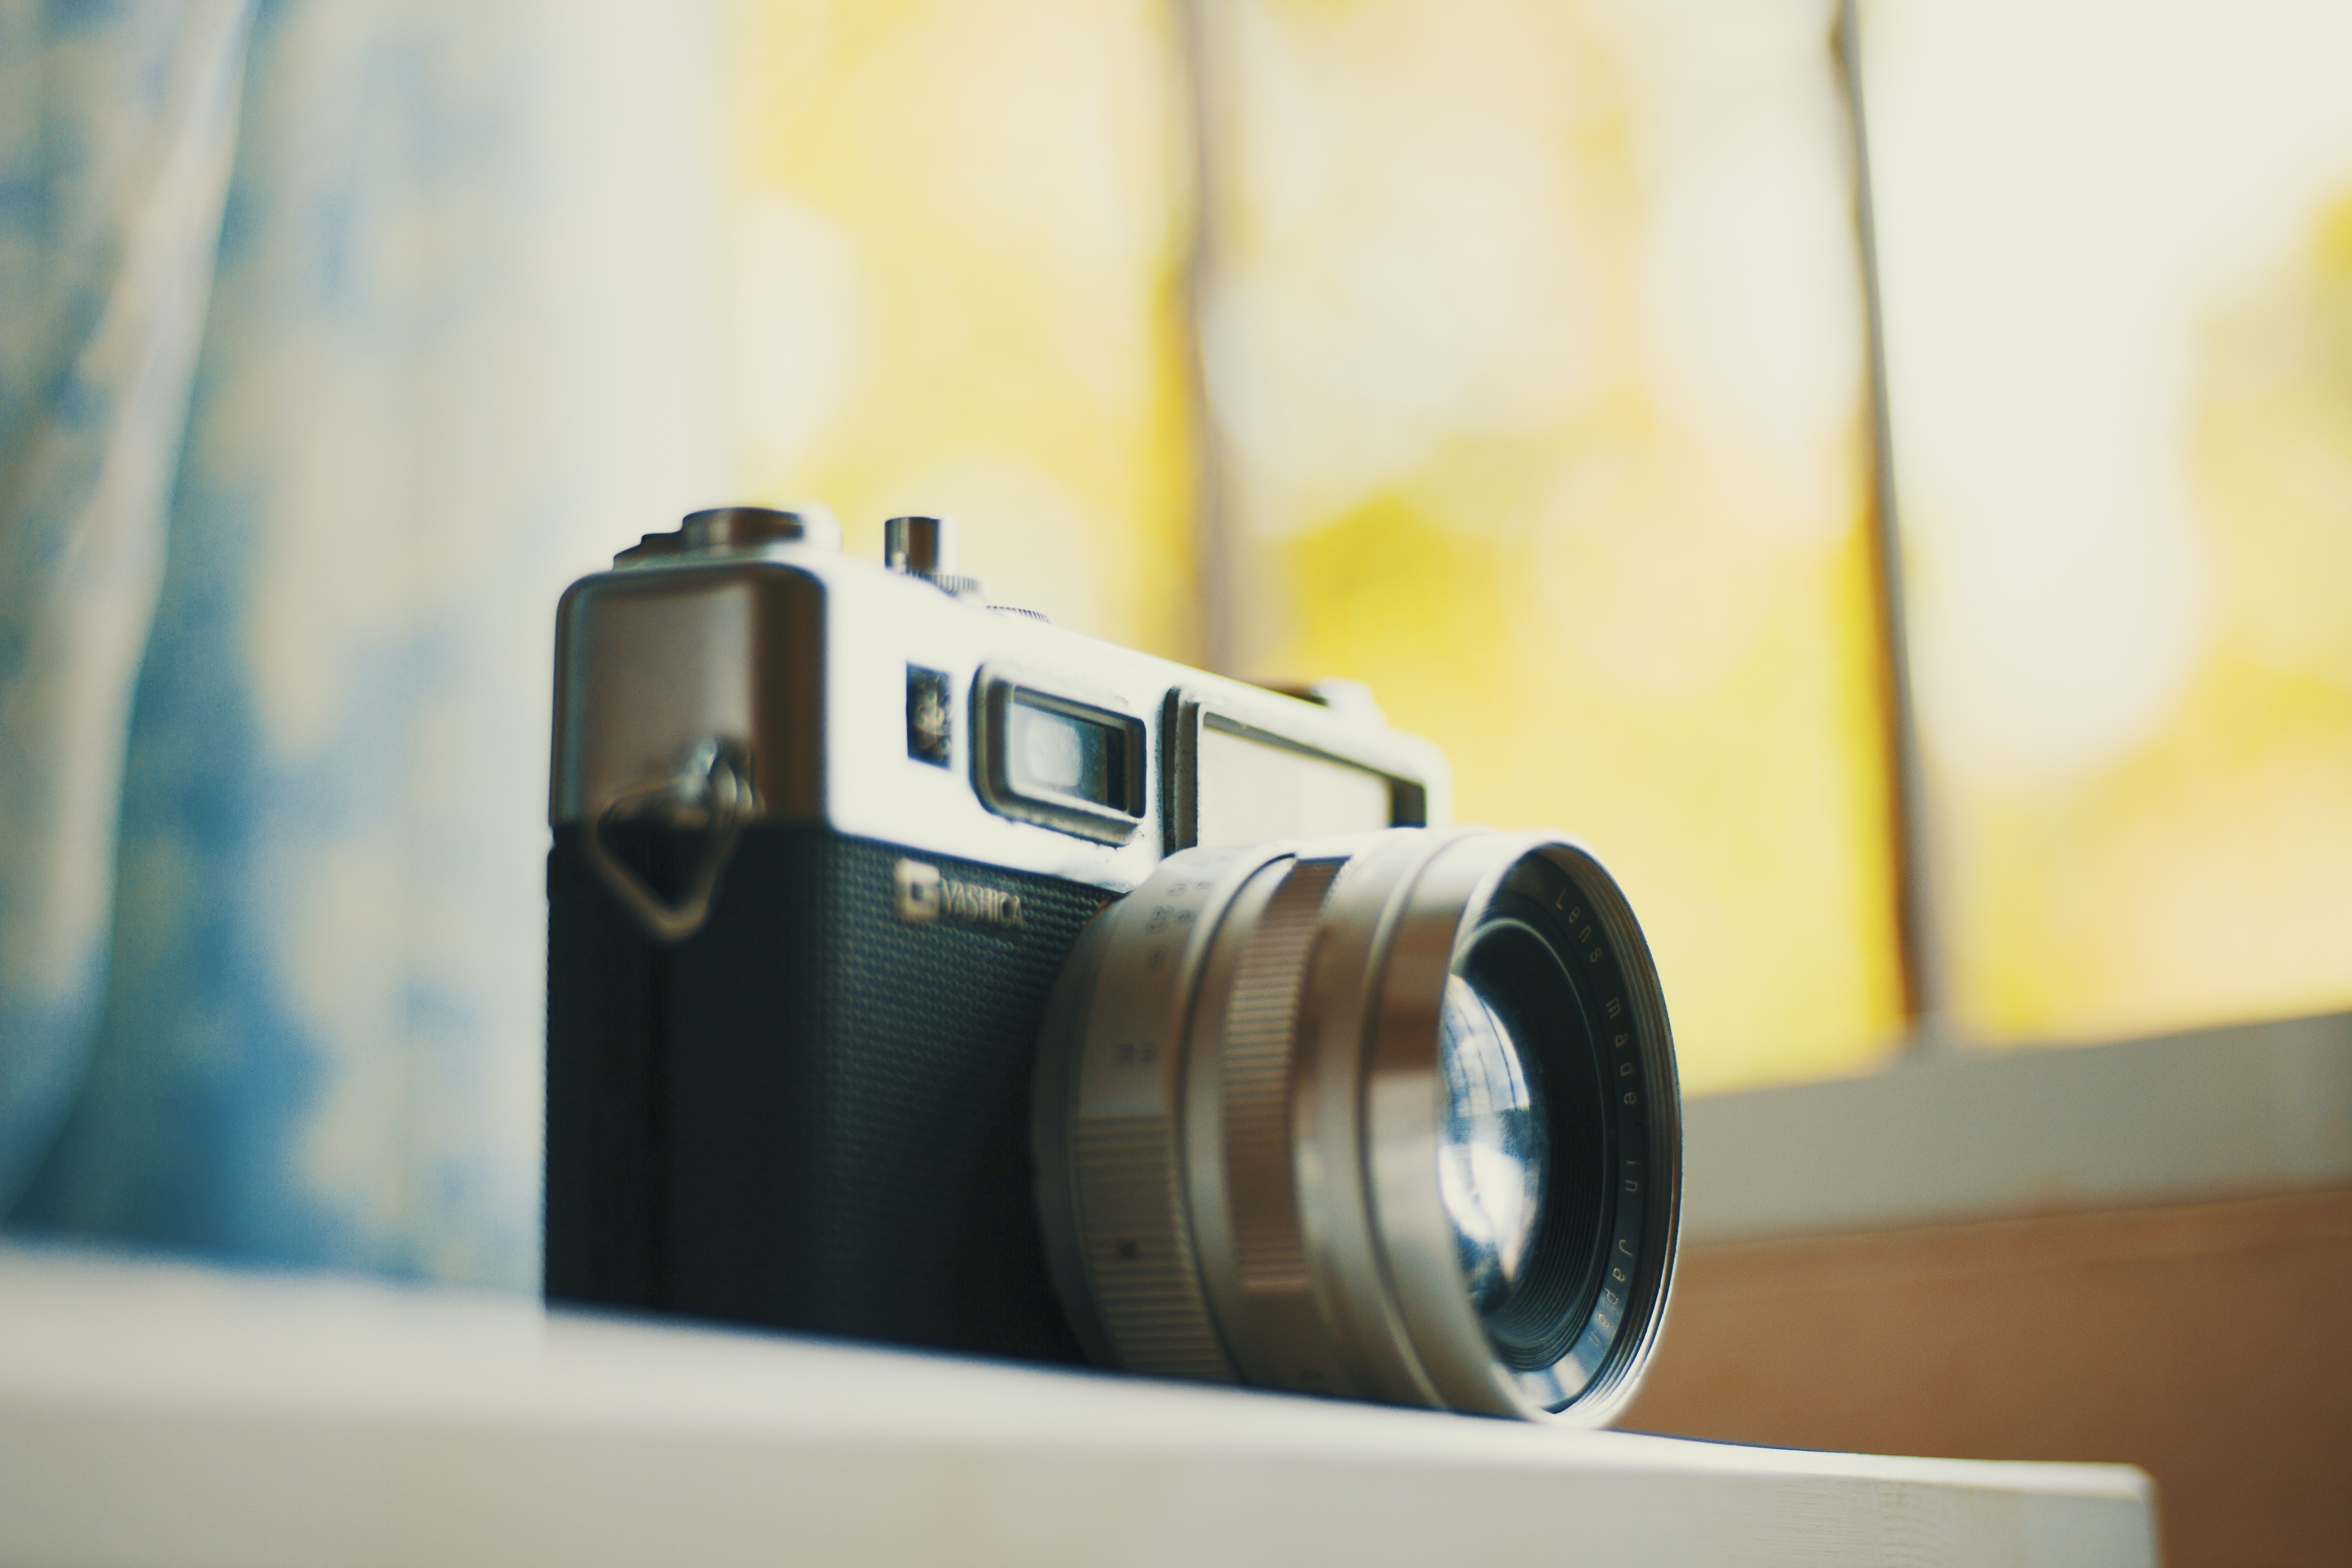 selective focus photography of black and grey DSLR camera on table